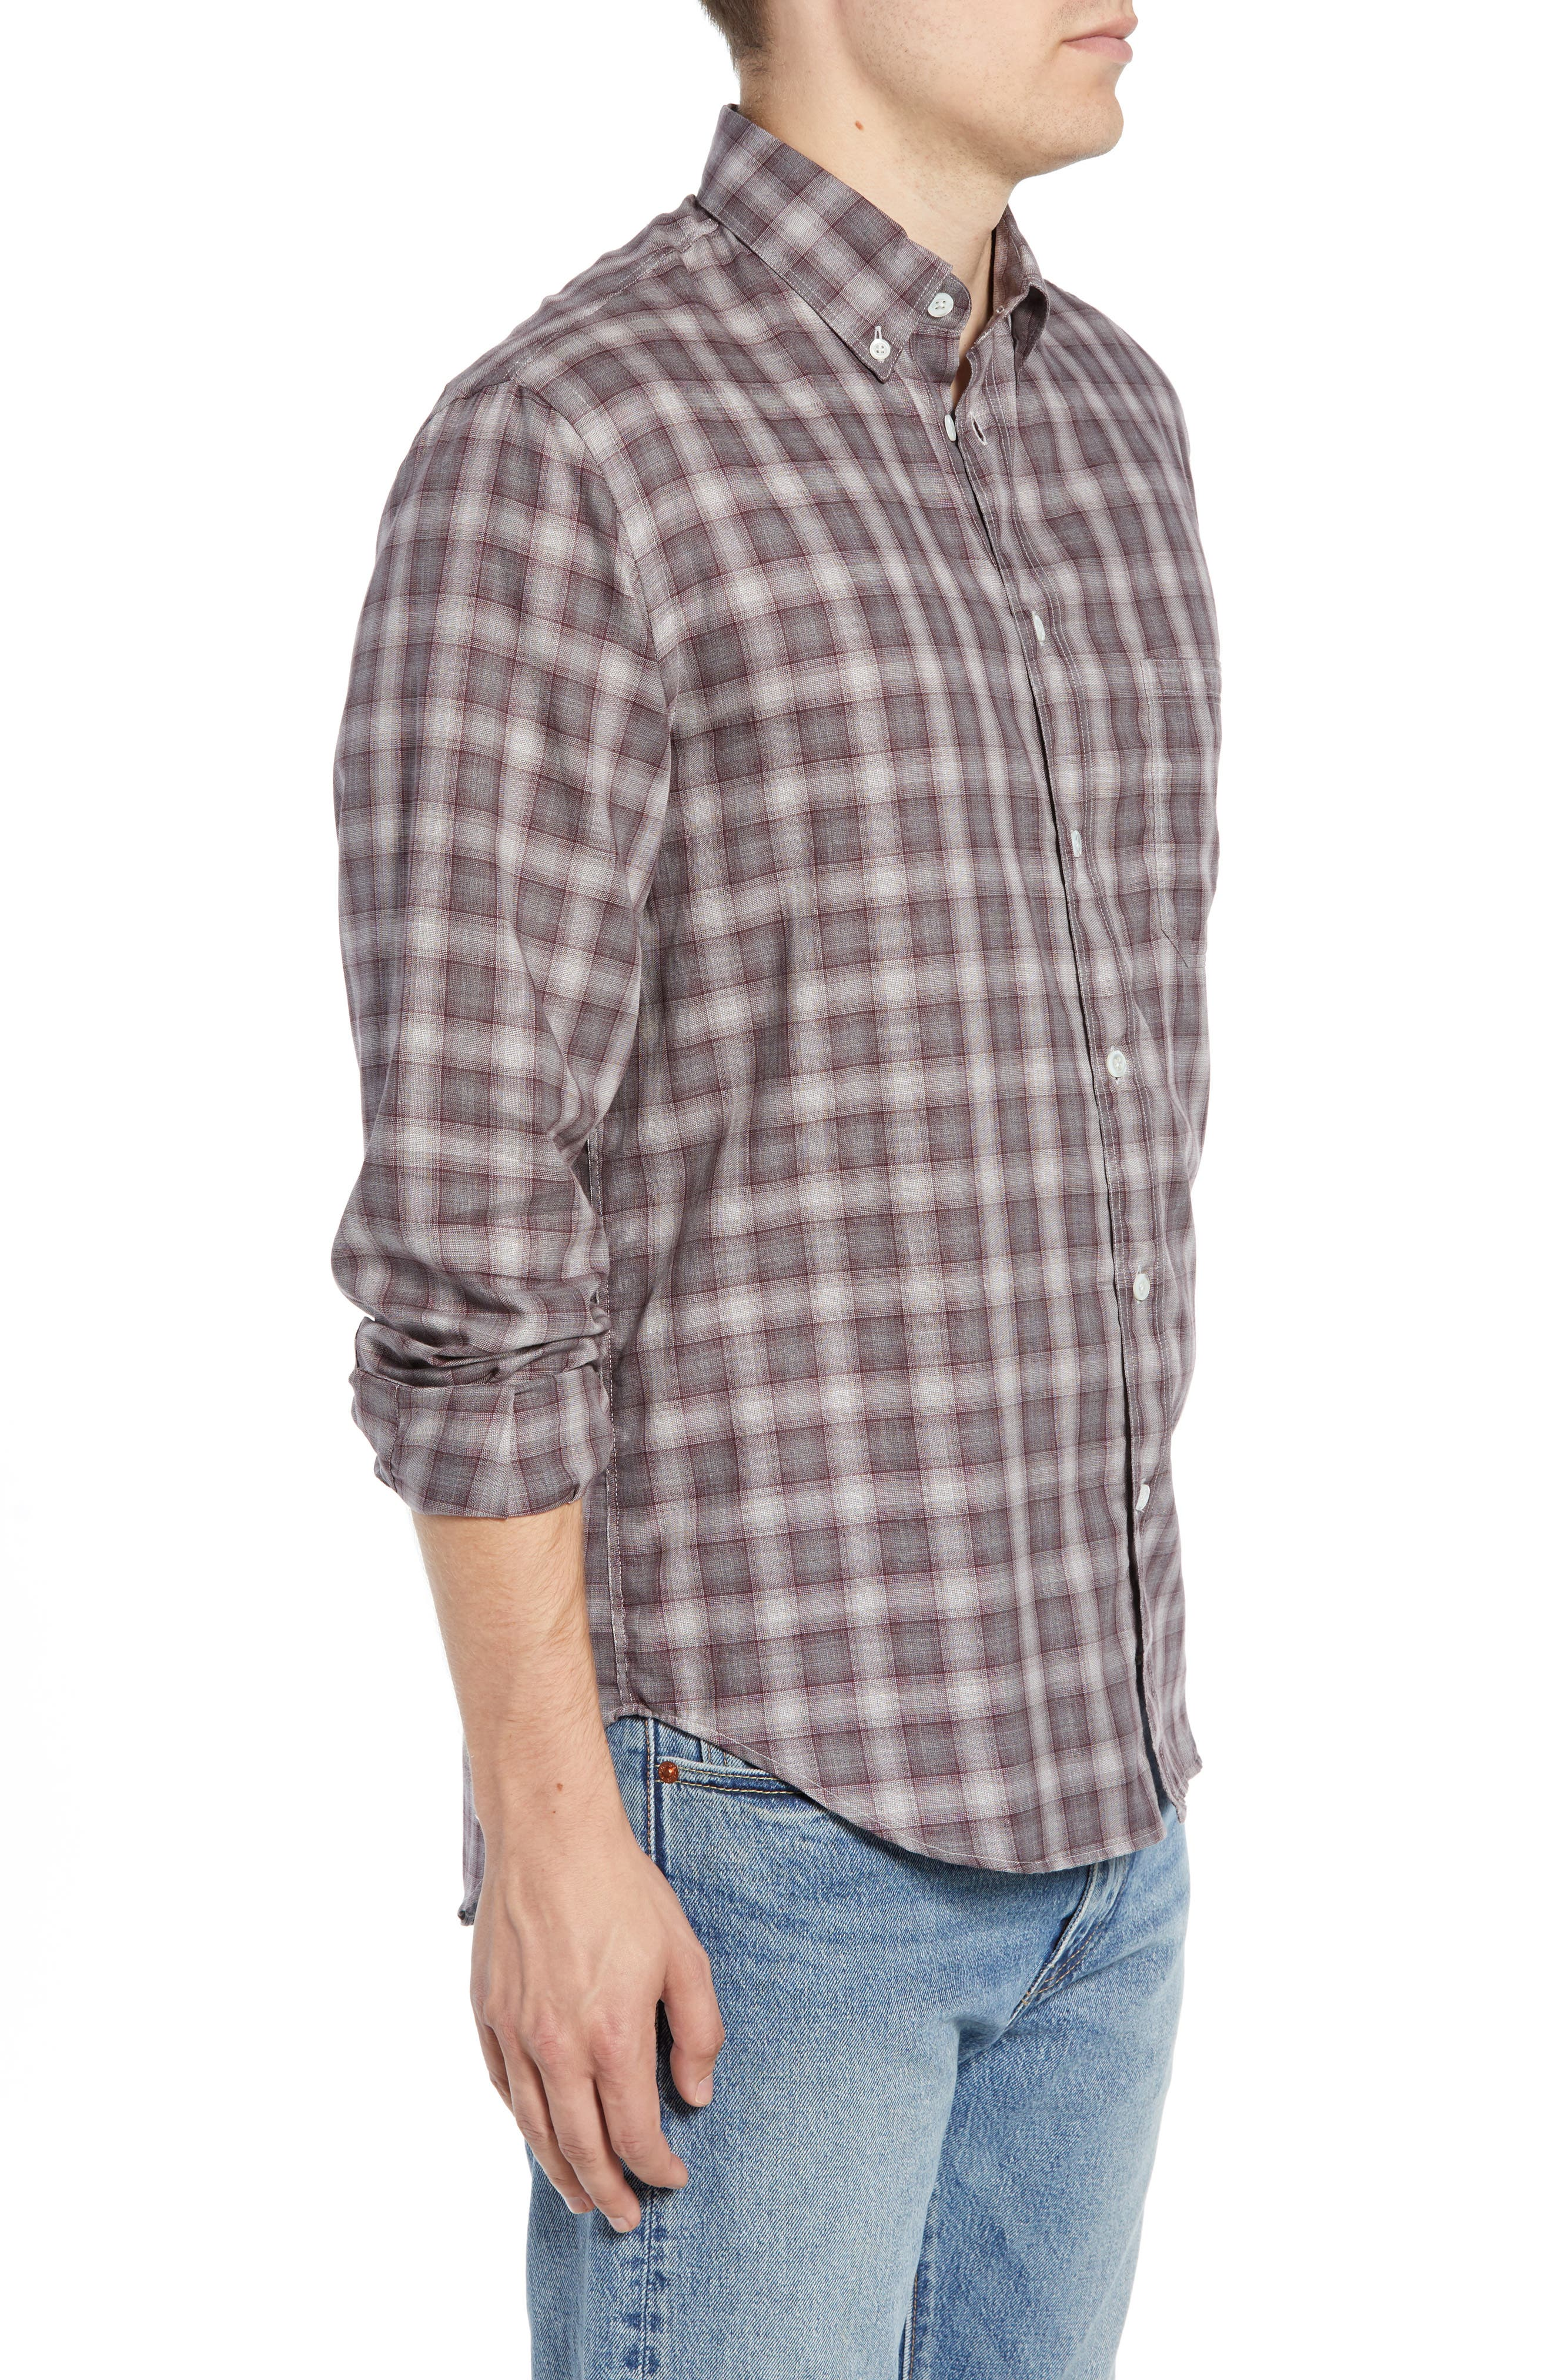 Tuscumbia Regular Fit Plaid Sport Shirt,                             Alternate thumbnail 4, color,                             930